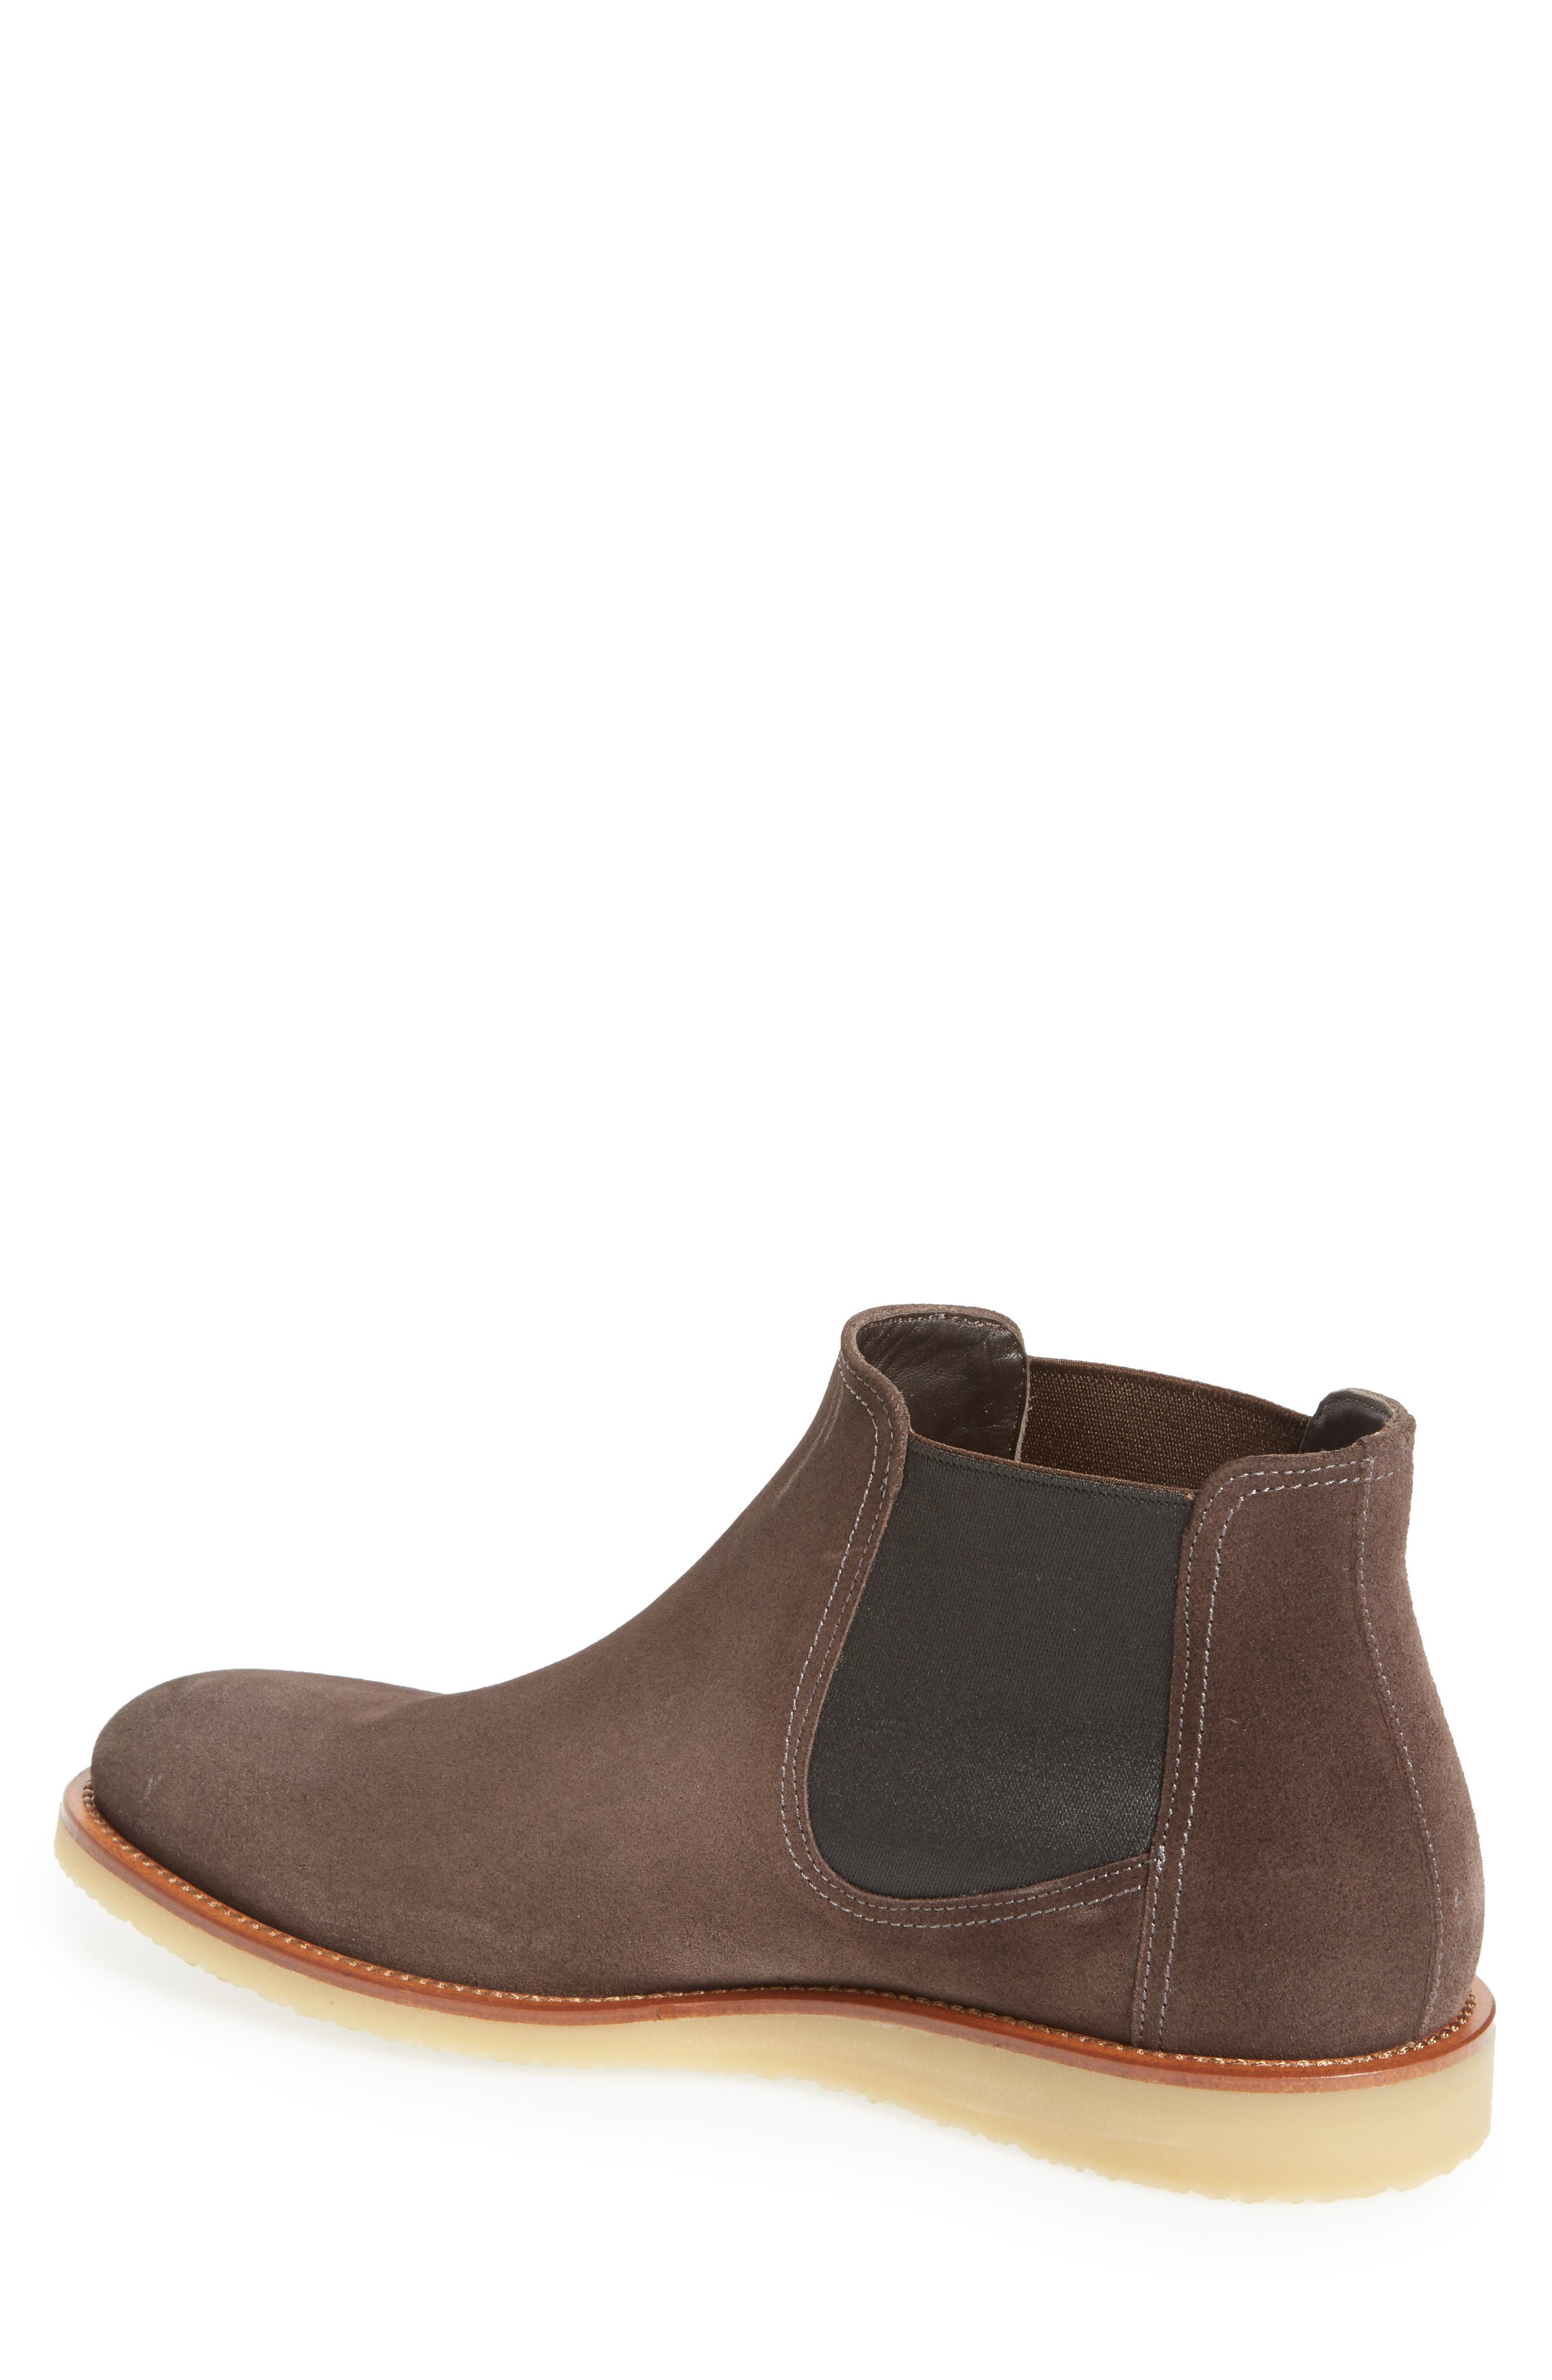 March Chelsea Boot,                             Alternate thumbnail 2, color,                             033